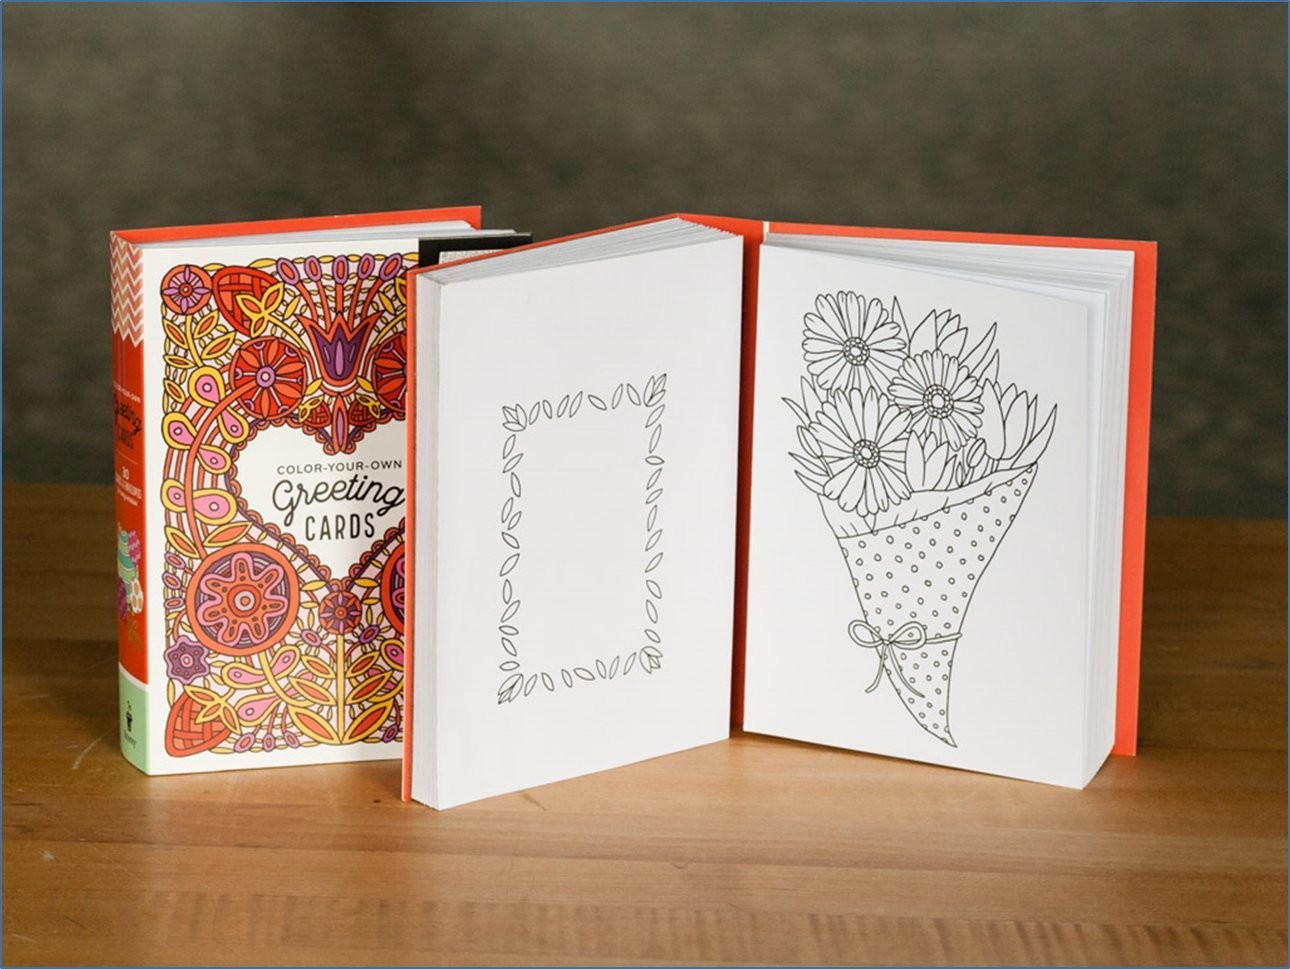 Color Your Own Greeting Cards 30 Cards Envelopes For Every